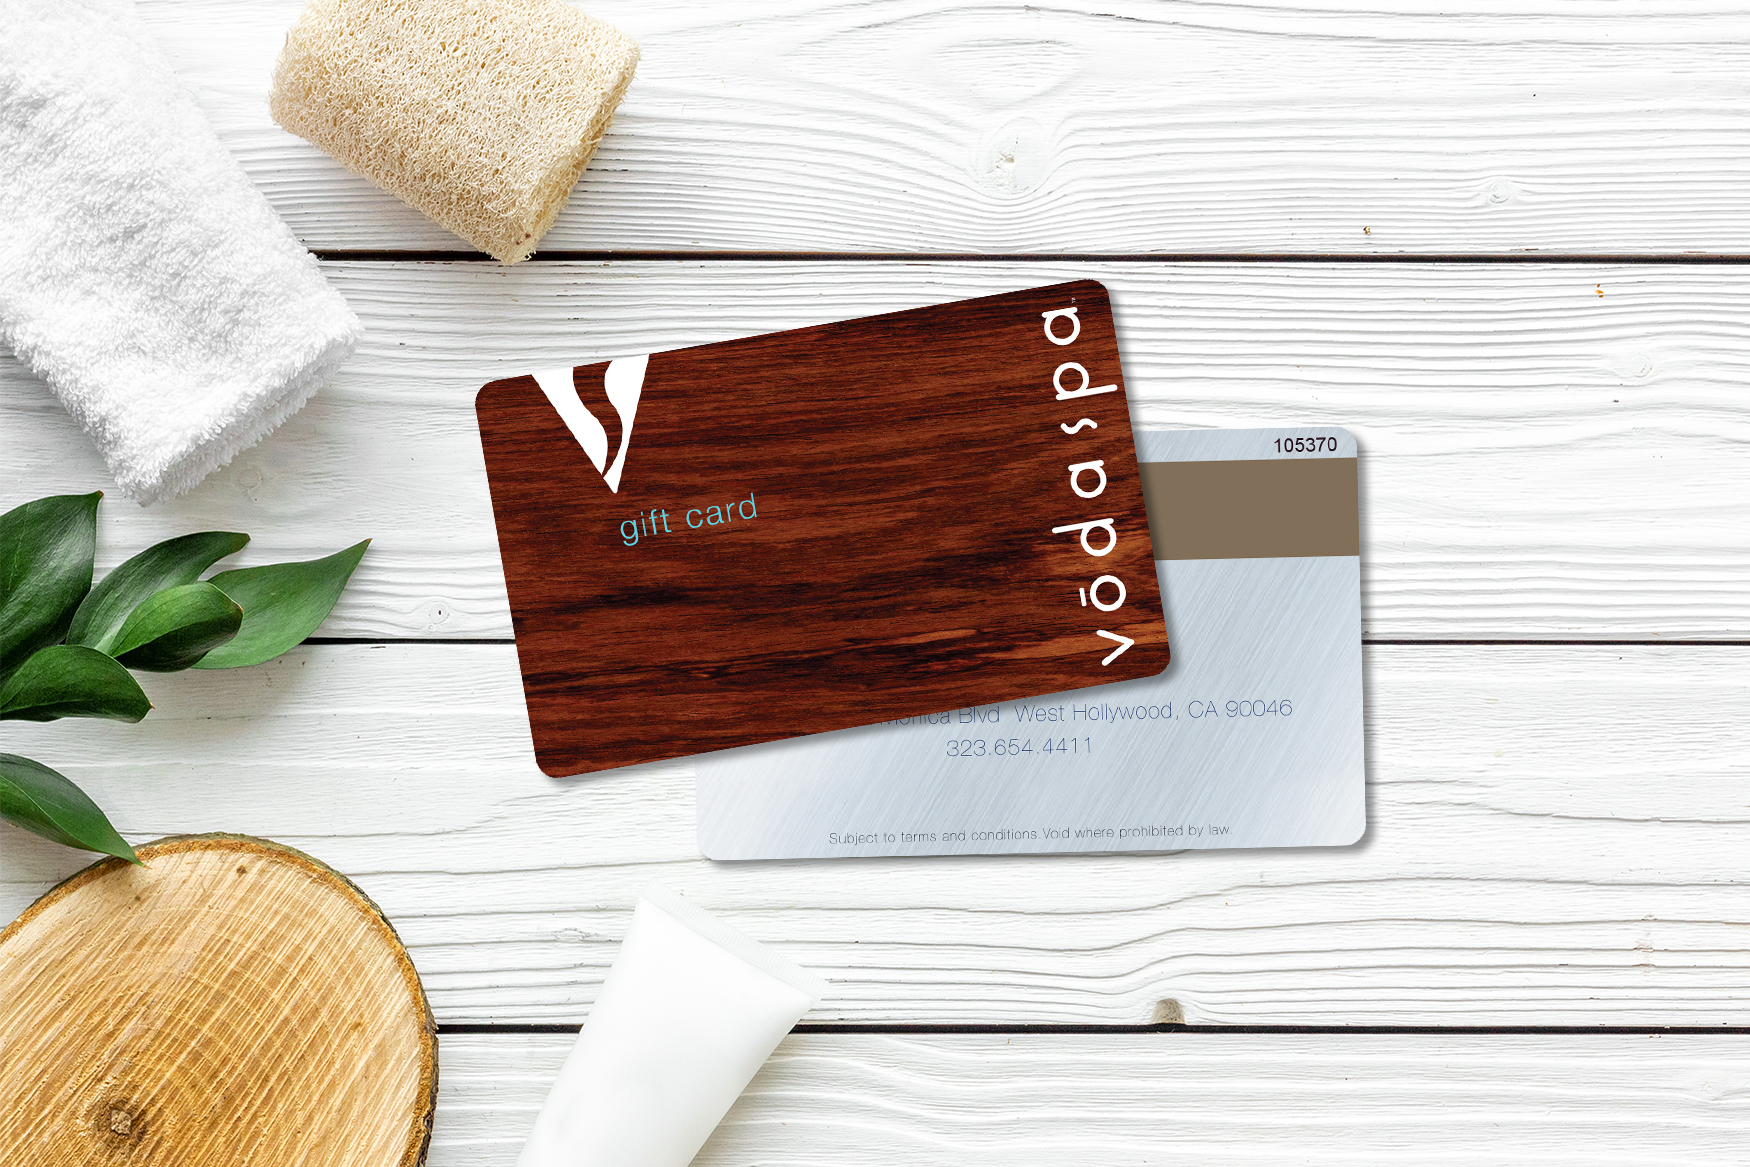 Plastic gift cards that replicate the look of wood